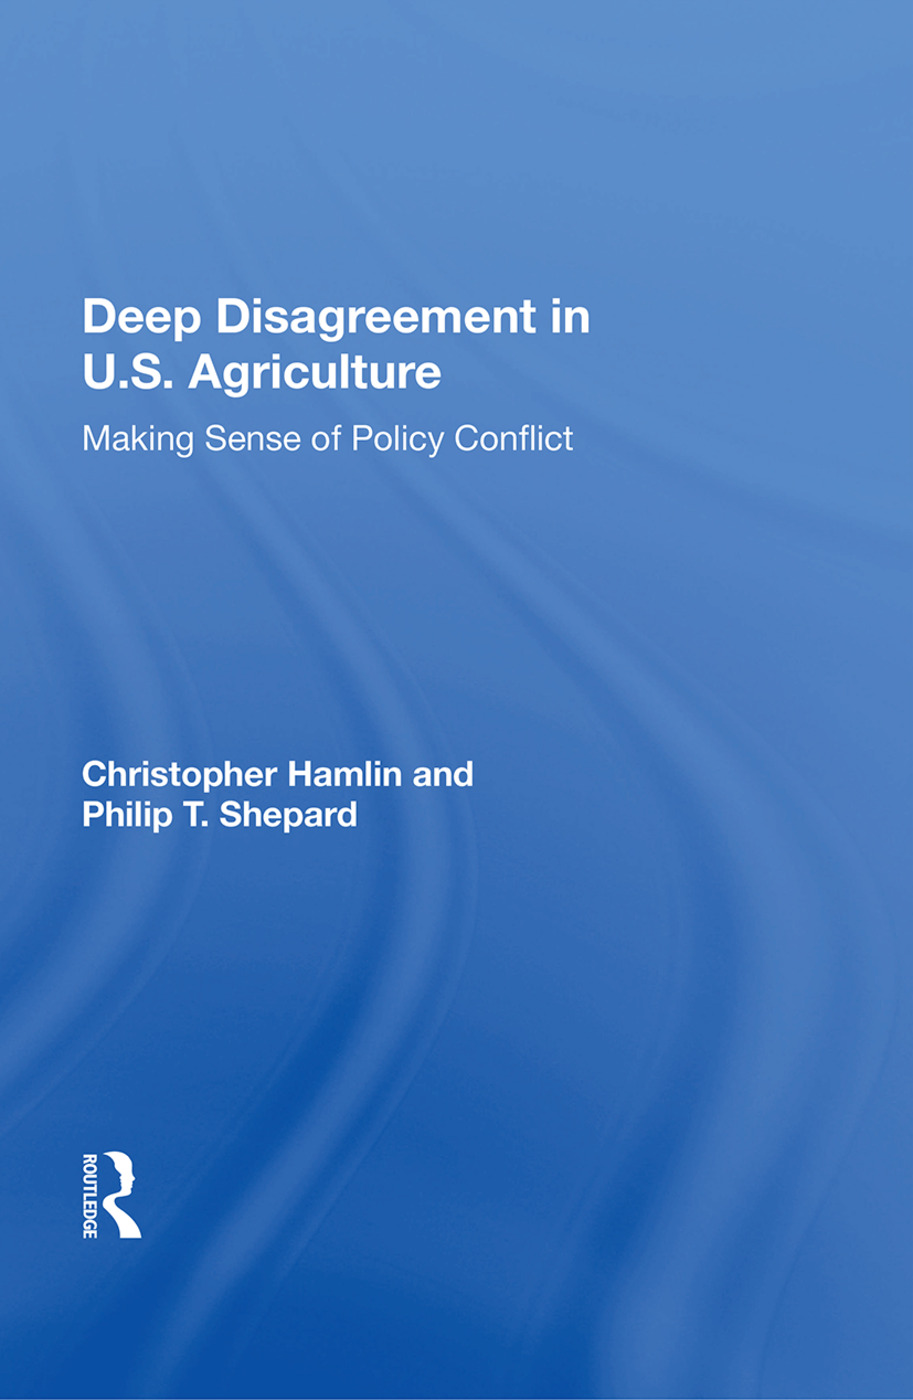 Deep Disagreement In U.s. Agriculture: Making Sense Of Policy Conflict, 1st Edition (Paperback) book cover